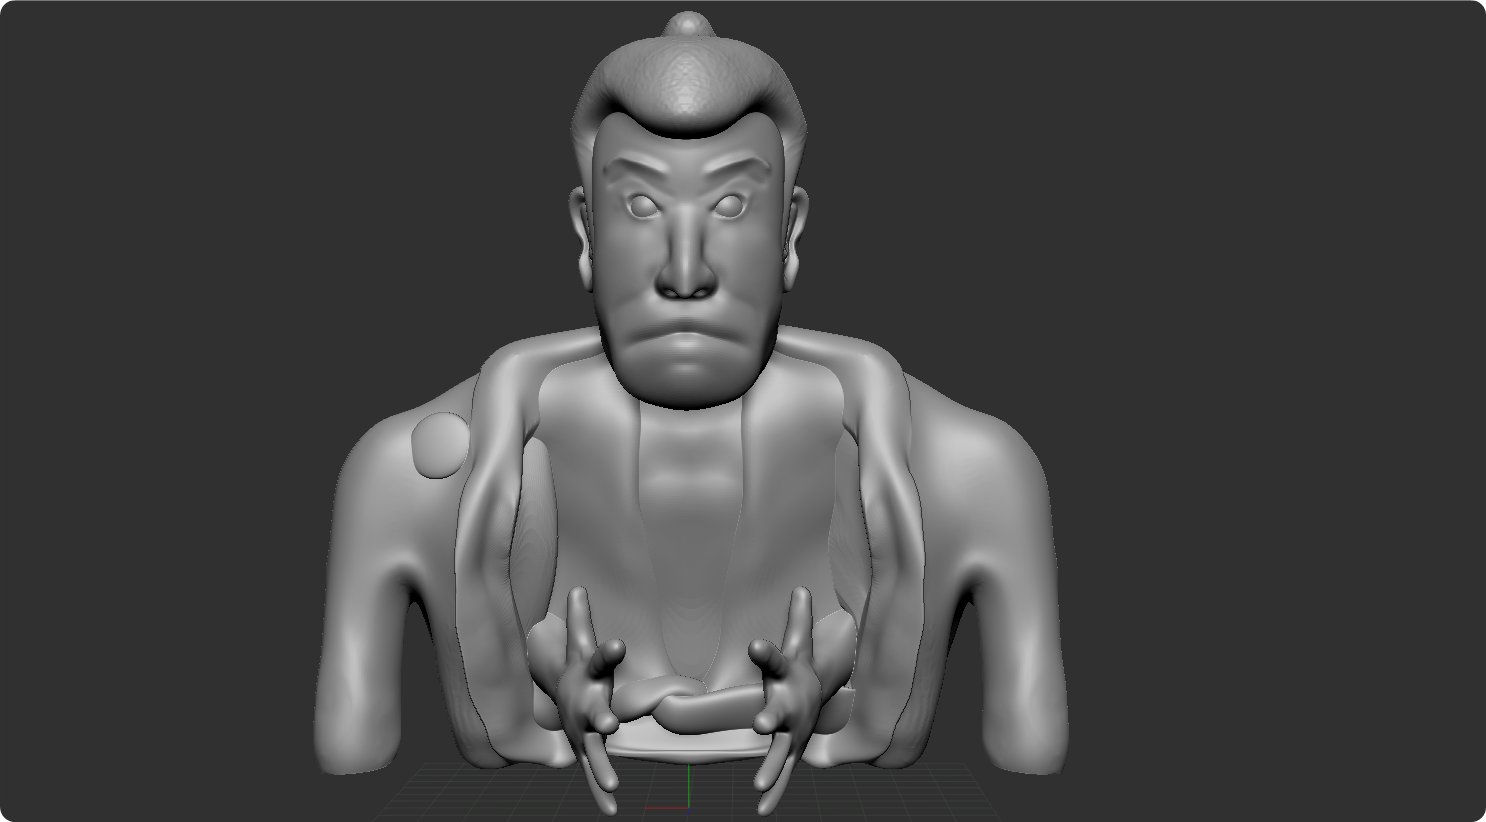 ZBrushCore_2016-10-22_10-00-04.png